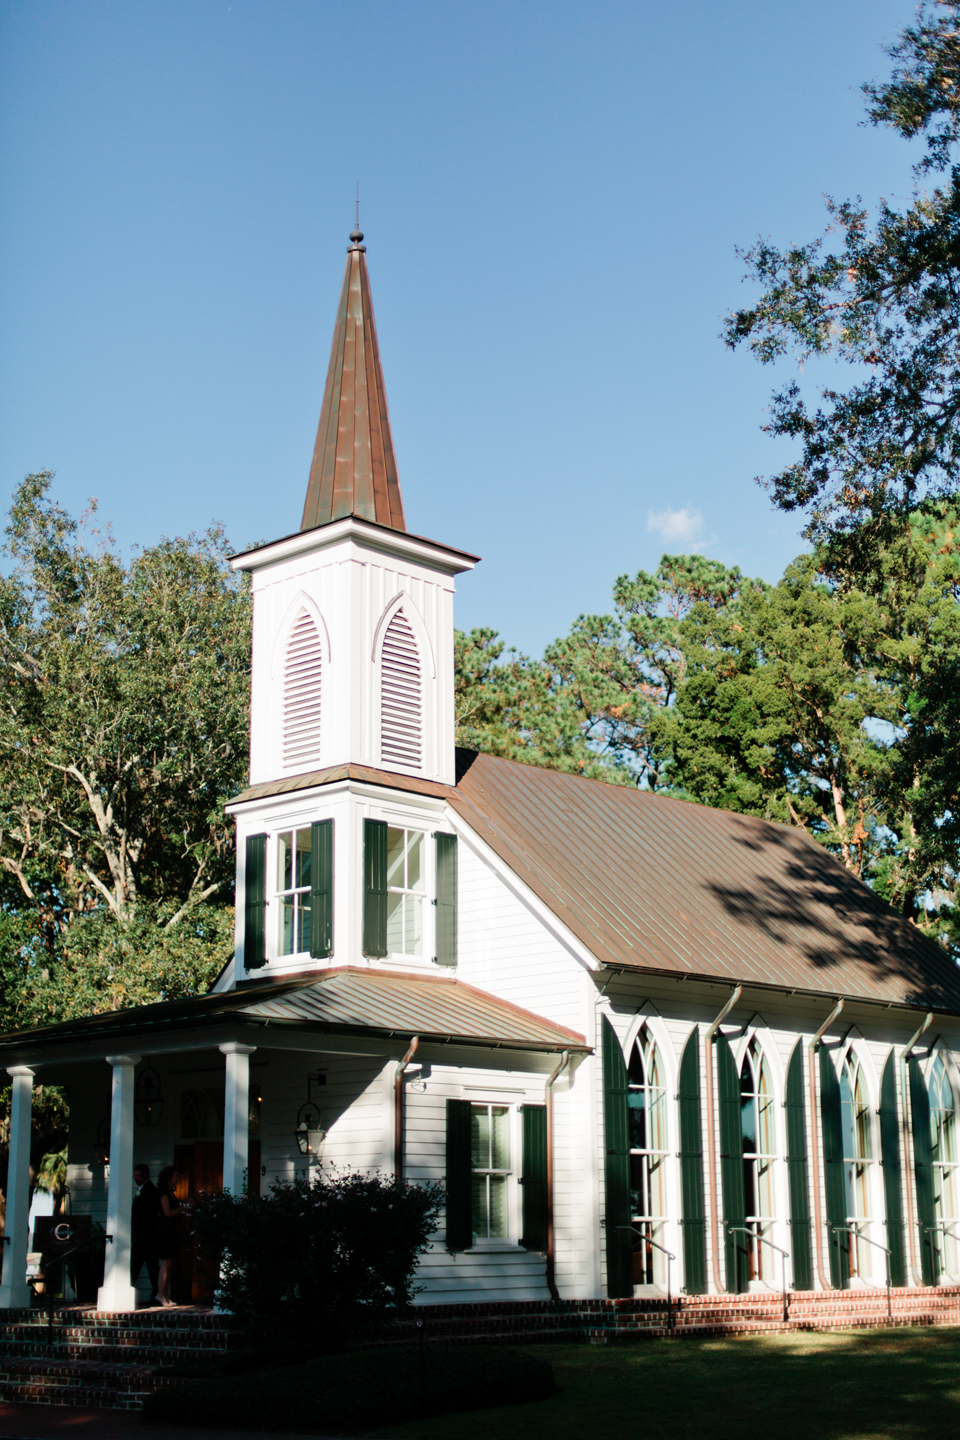 Image of a quaint white chapel with shutters in Montage Palmetto Bluff, coastal South Carolina